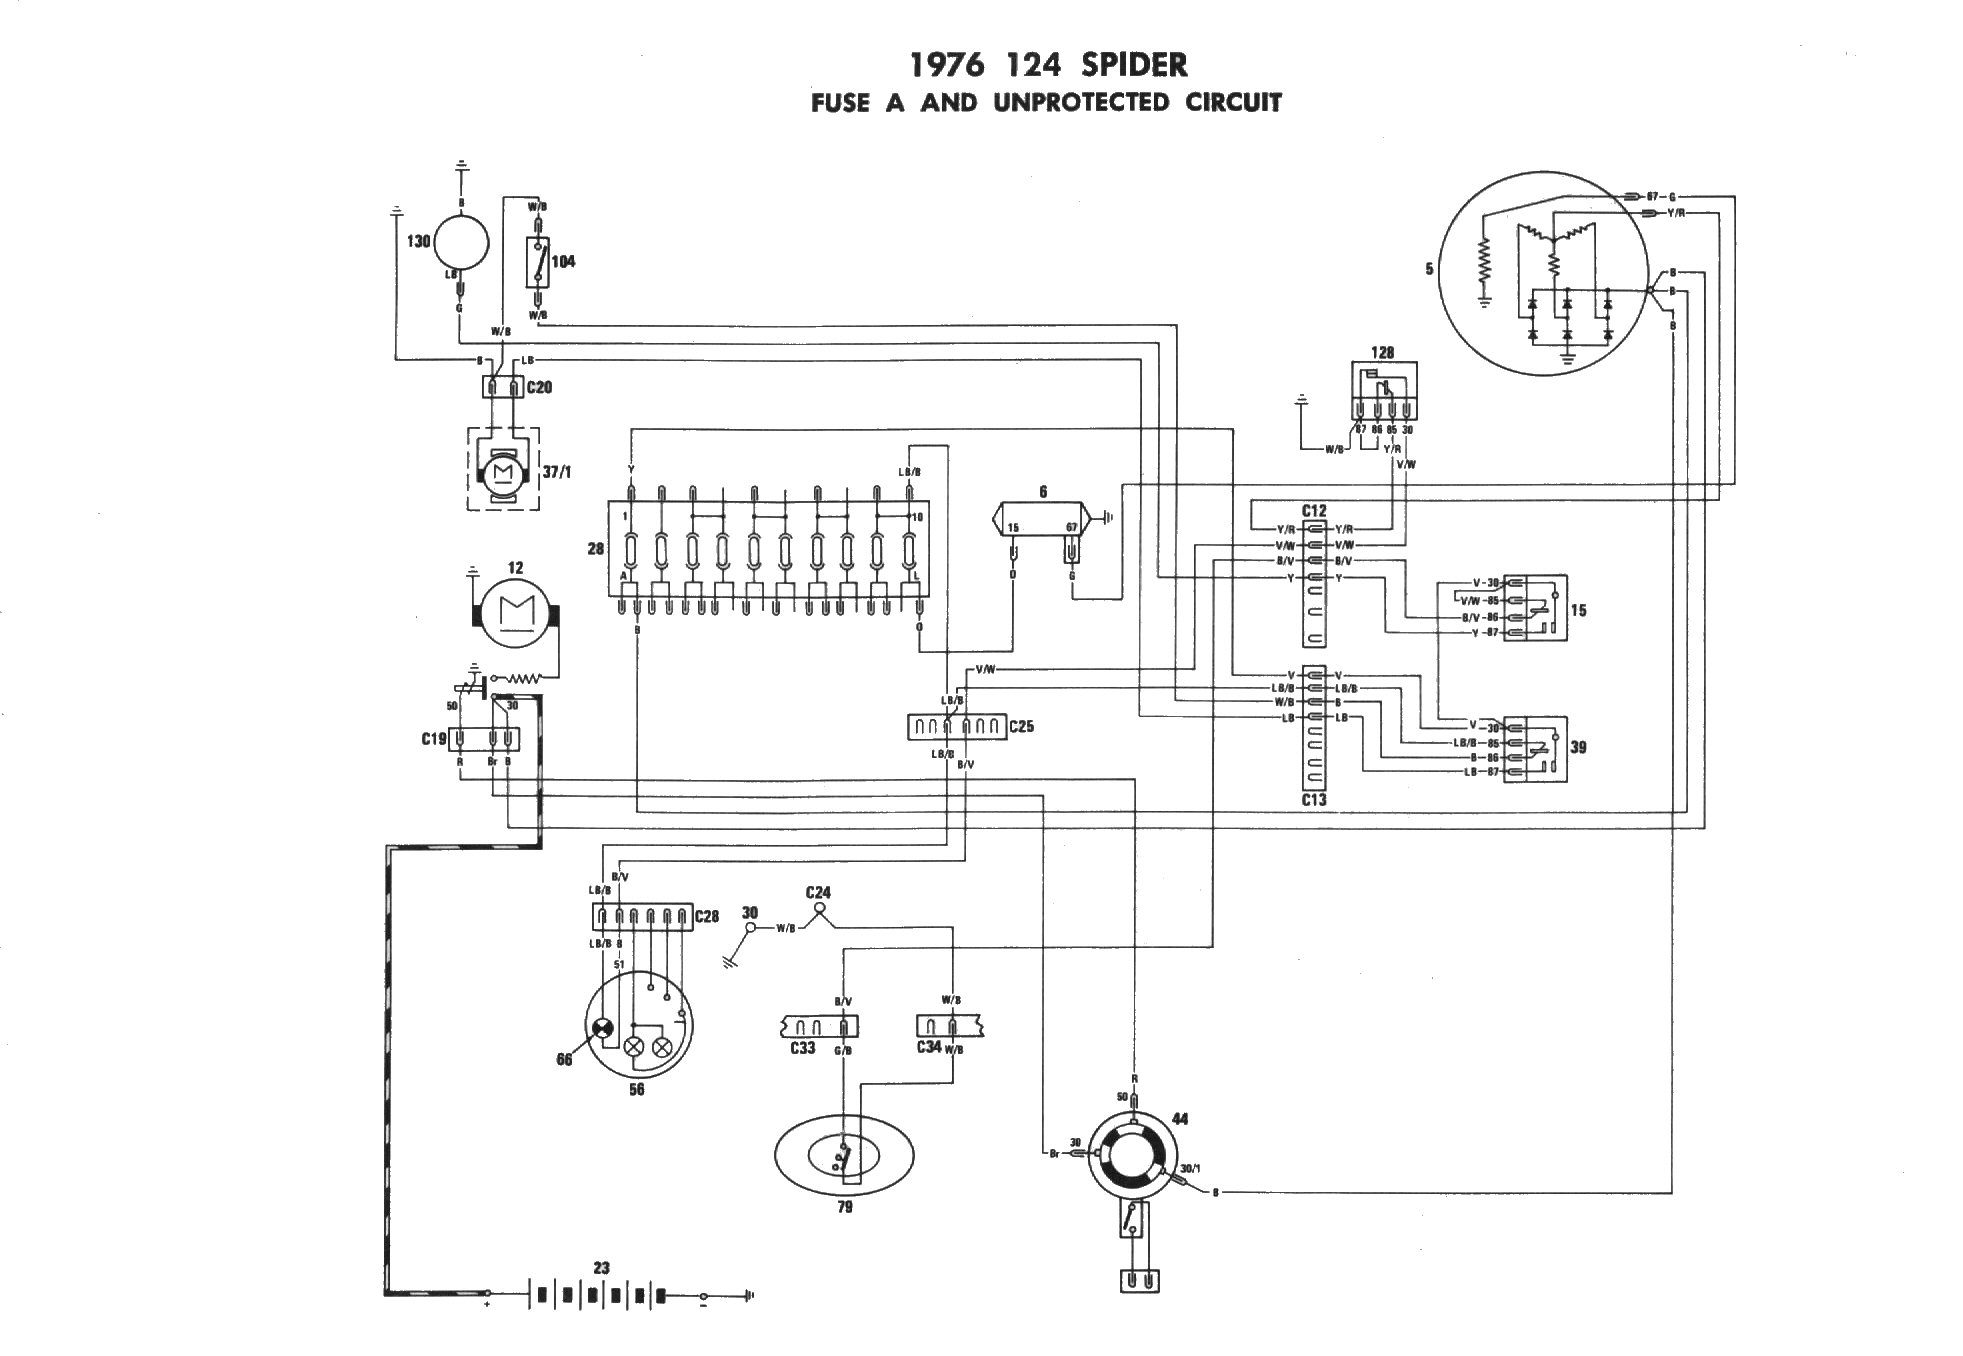 fiat 124 spider spidersweb nl on repeated request electrical rh fiat124spider com Porsche 914 Wiring-Diagram 1990 Miata Wiring Harness Diagram